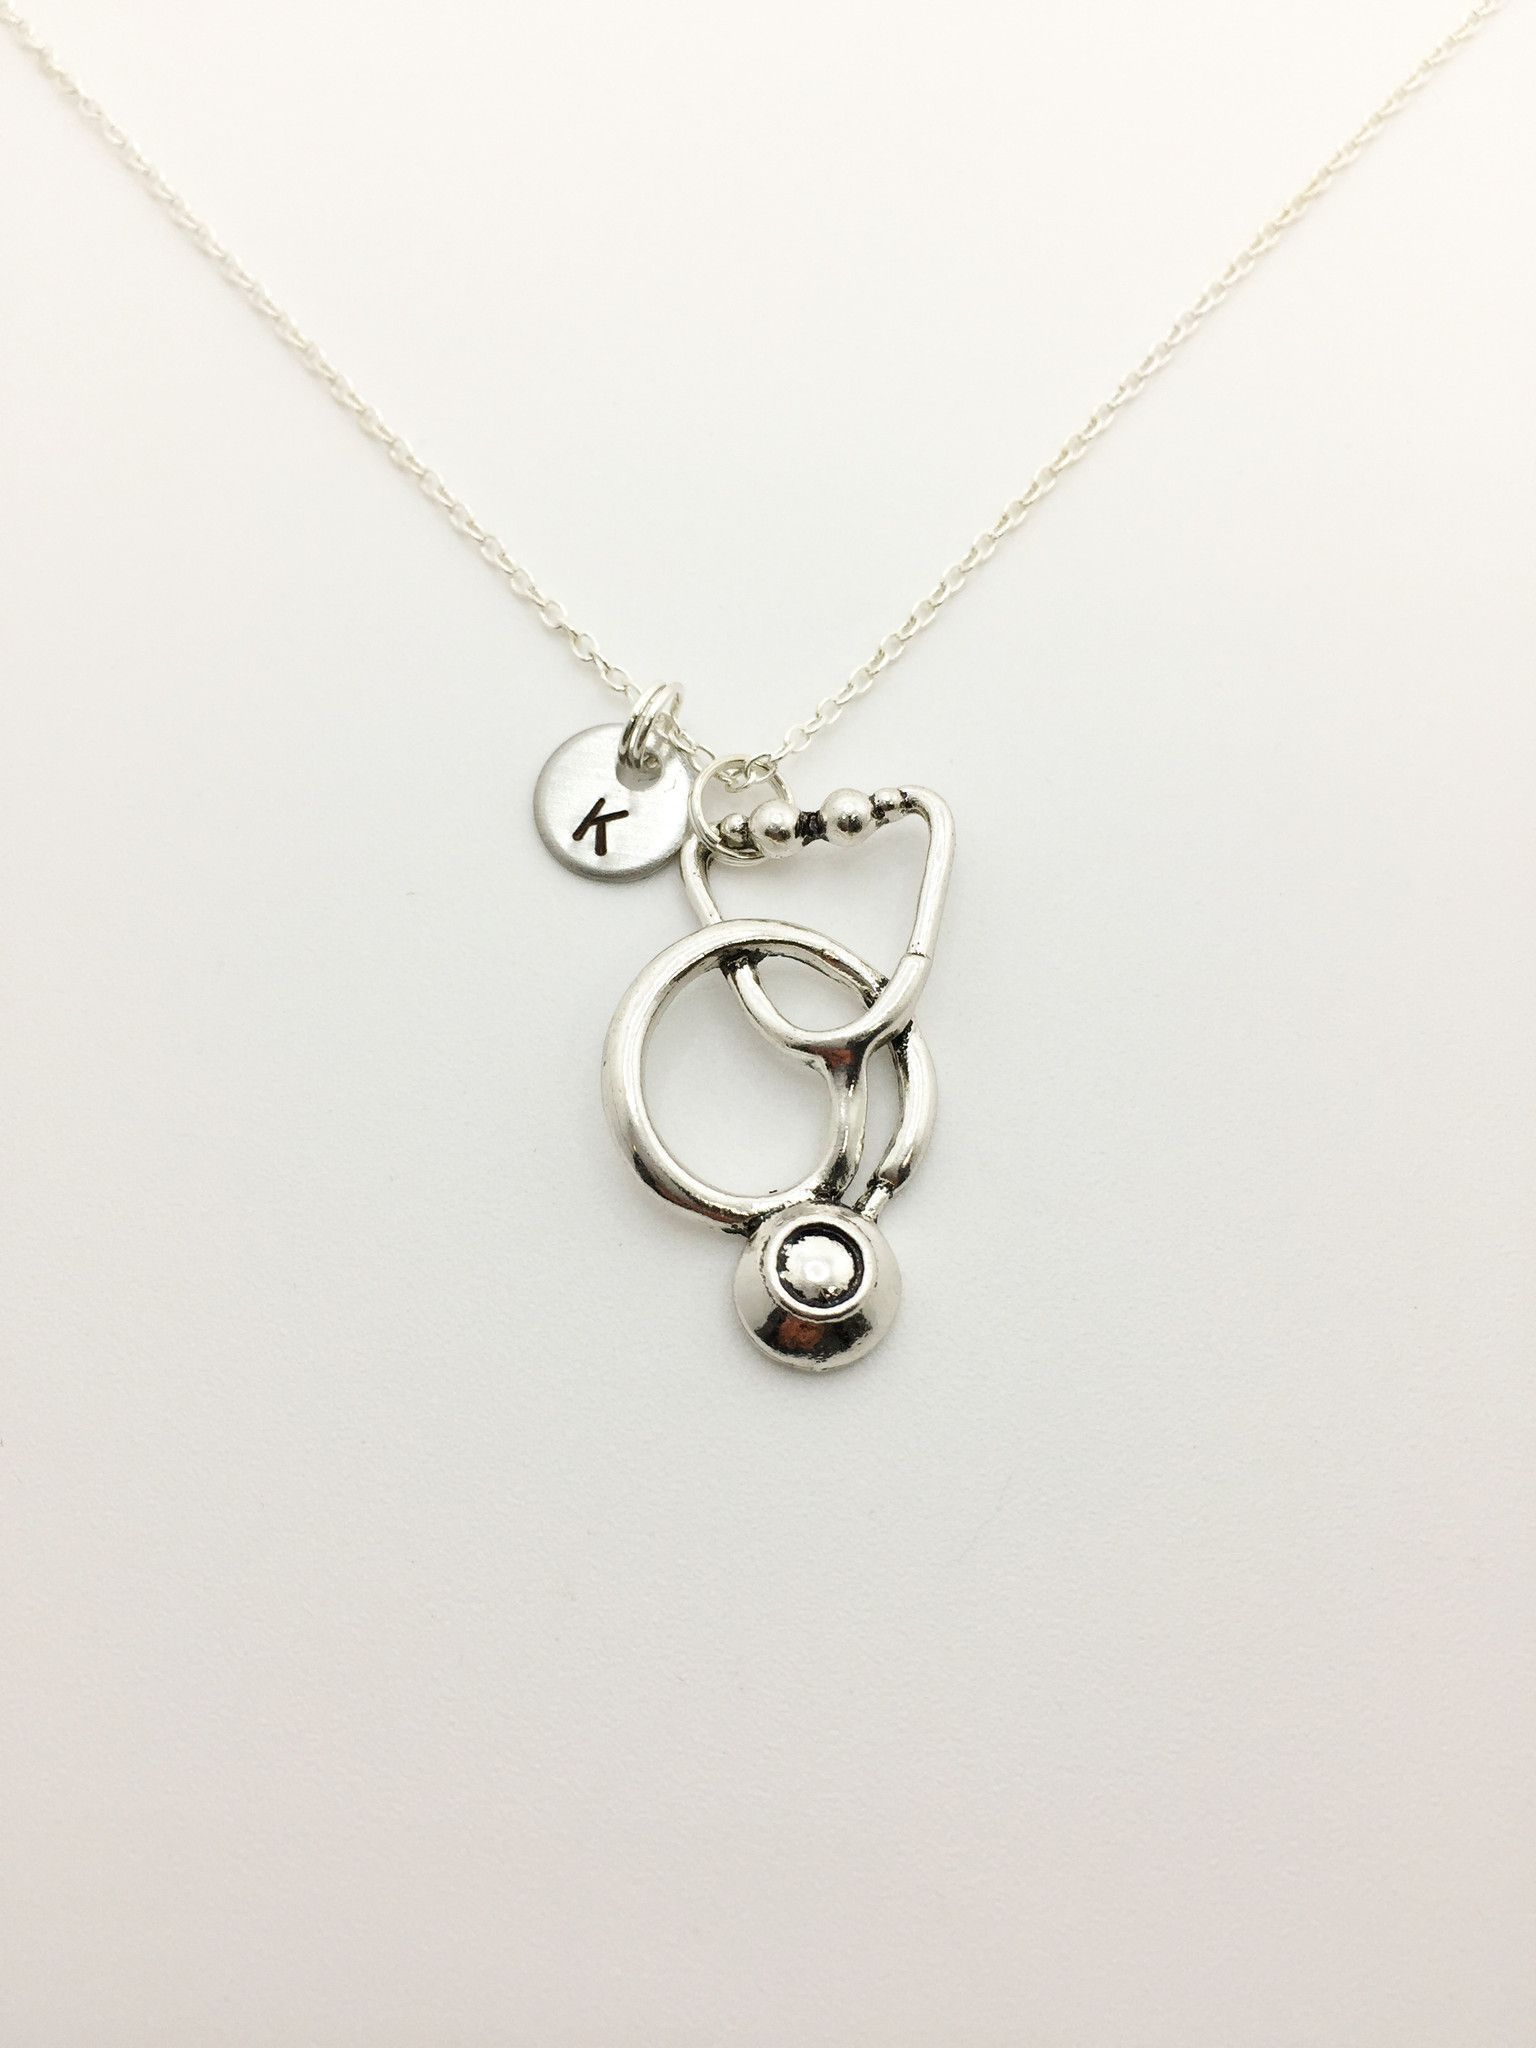 pandora necklace heart ventricles anatomy